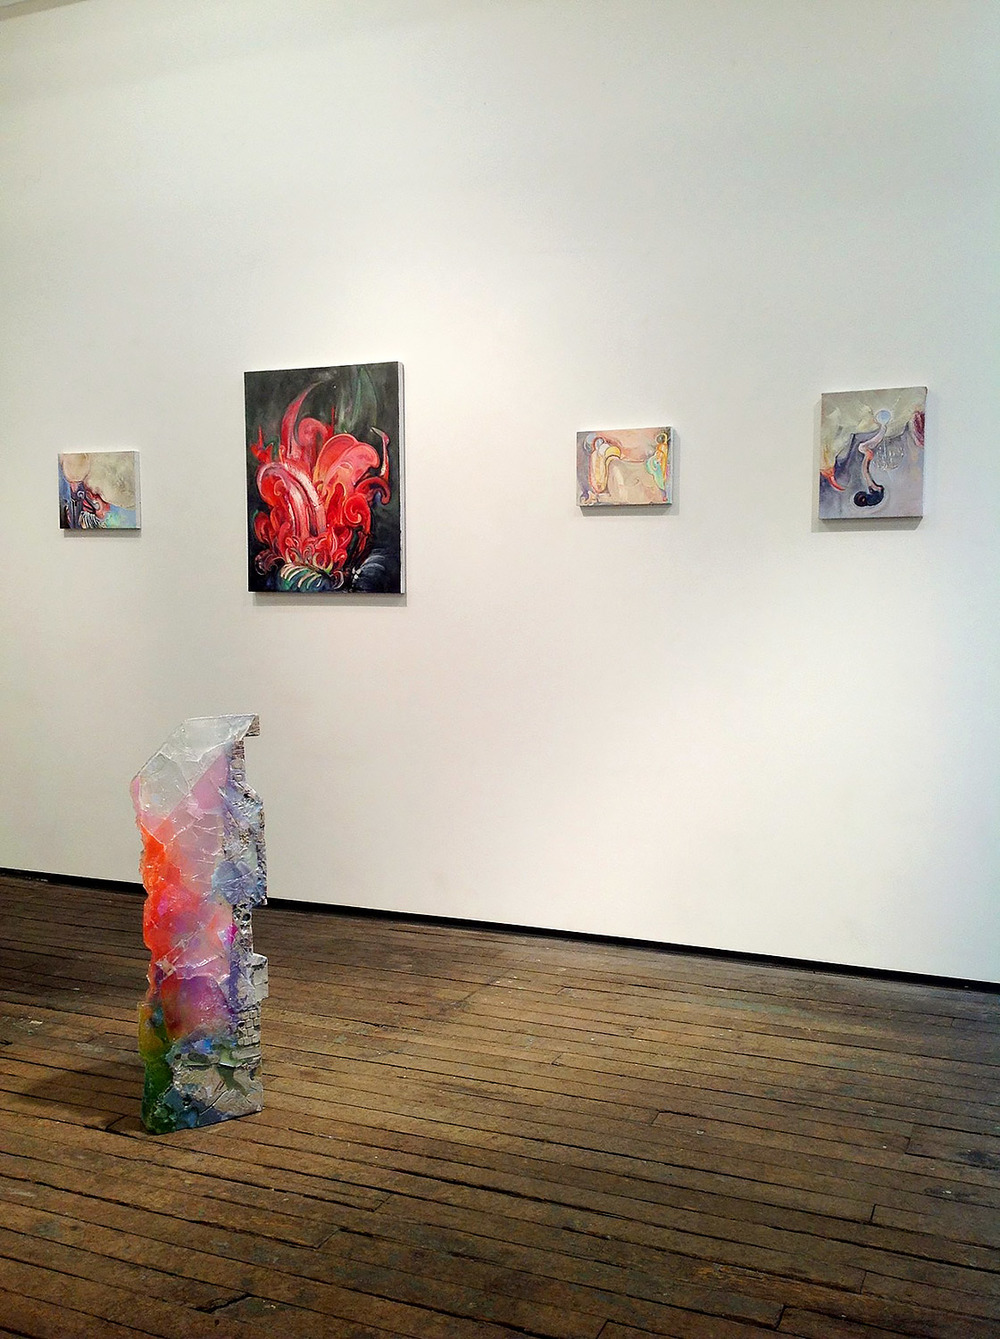 Brian Wood <br> Installation View <br> Brian Wood & Amy Brener <br> Novella at Salon Zurcher, 2015